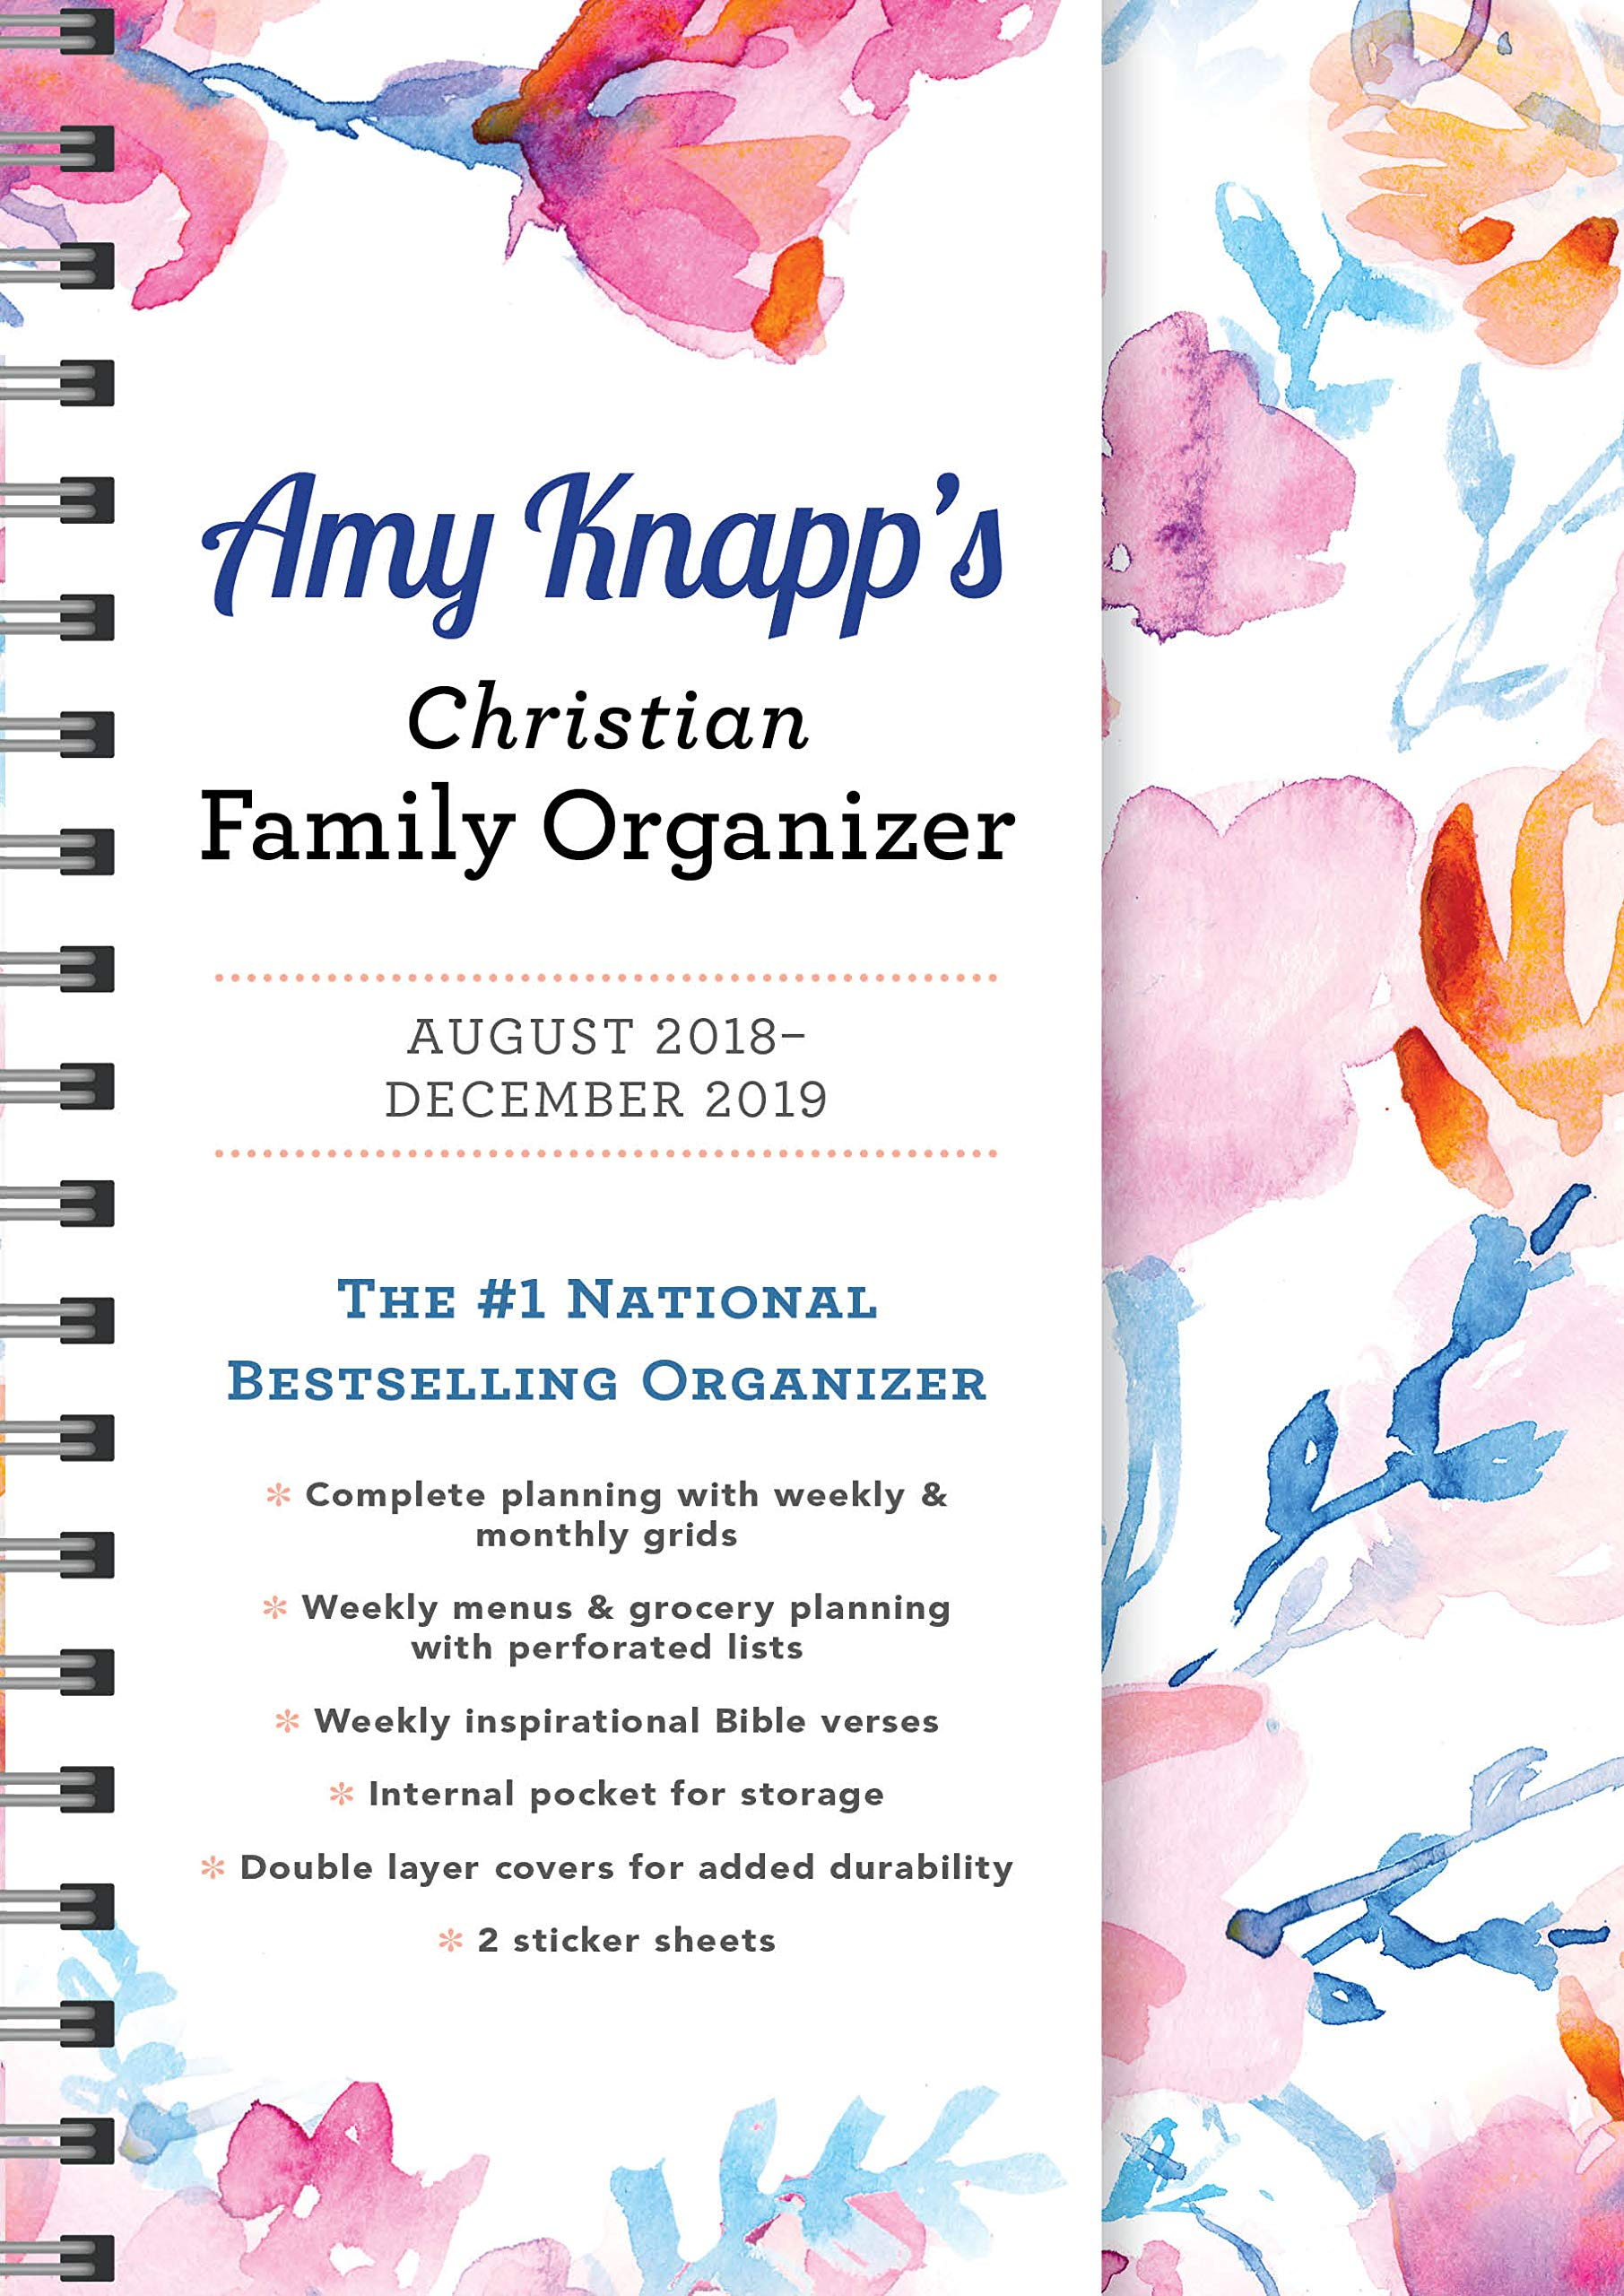 Chrisitan Concert Calendar December 2019 2019 Amy Knapp's Christian Family Organizer: August 2018 December